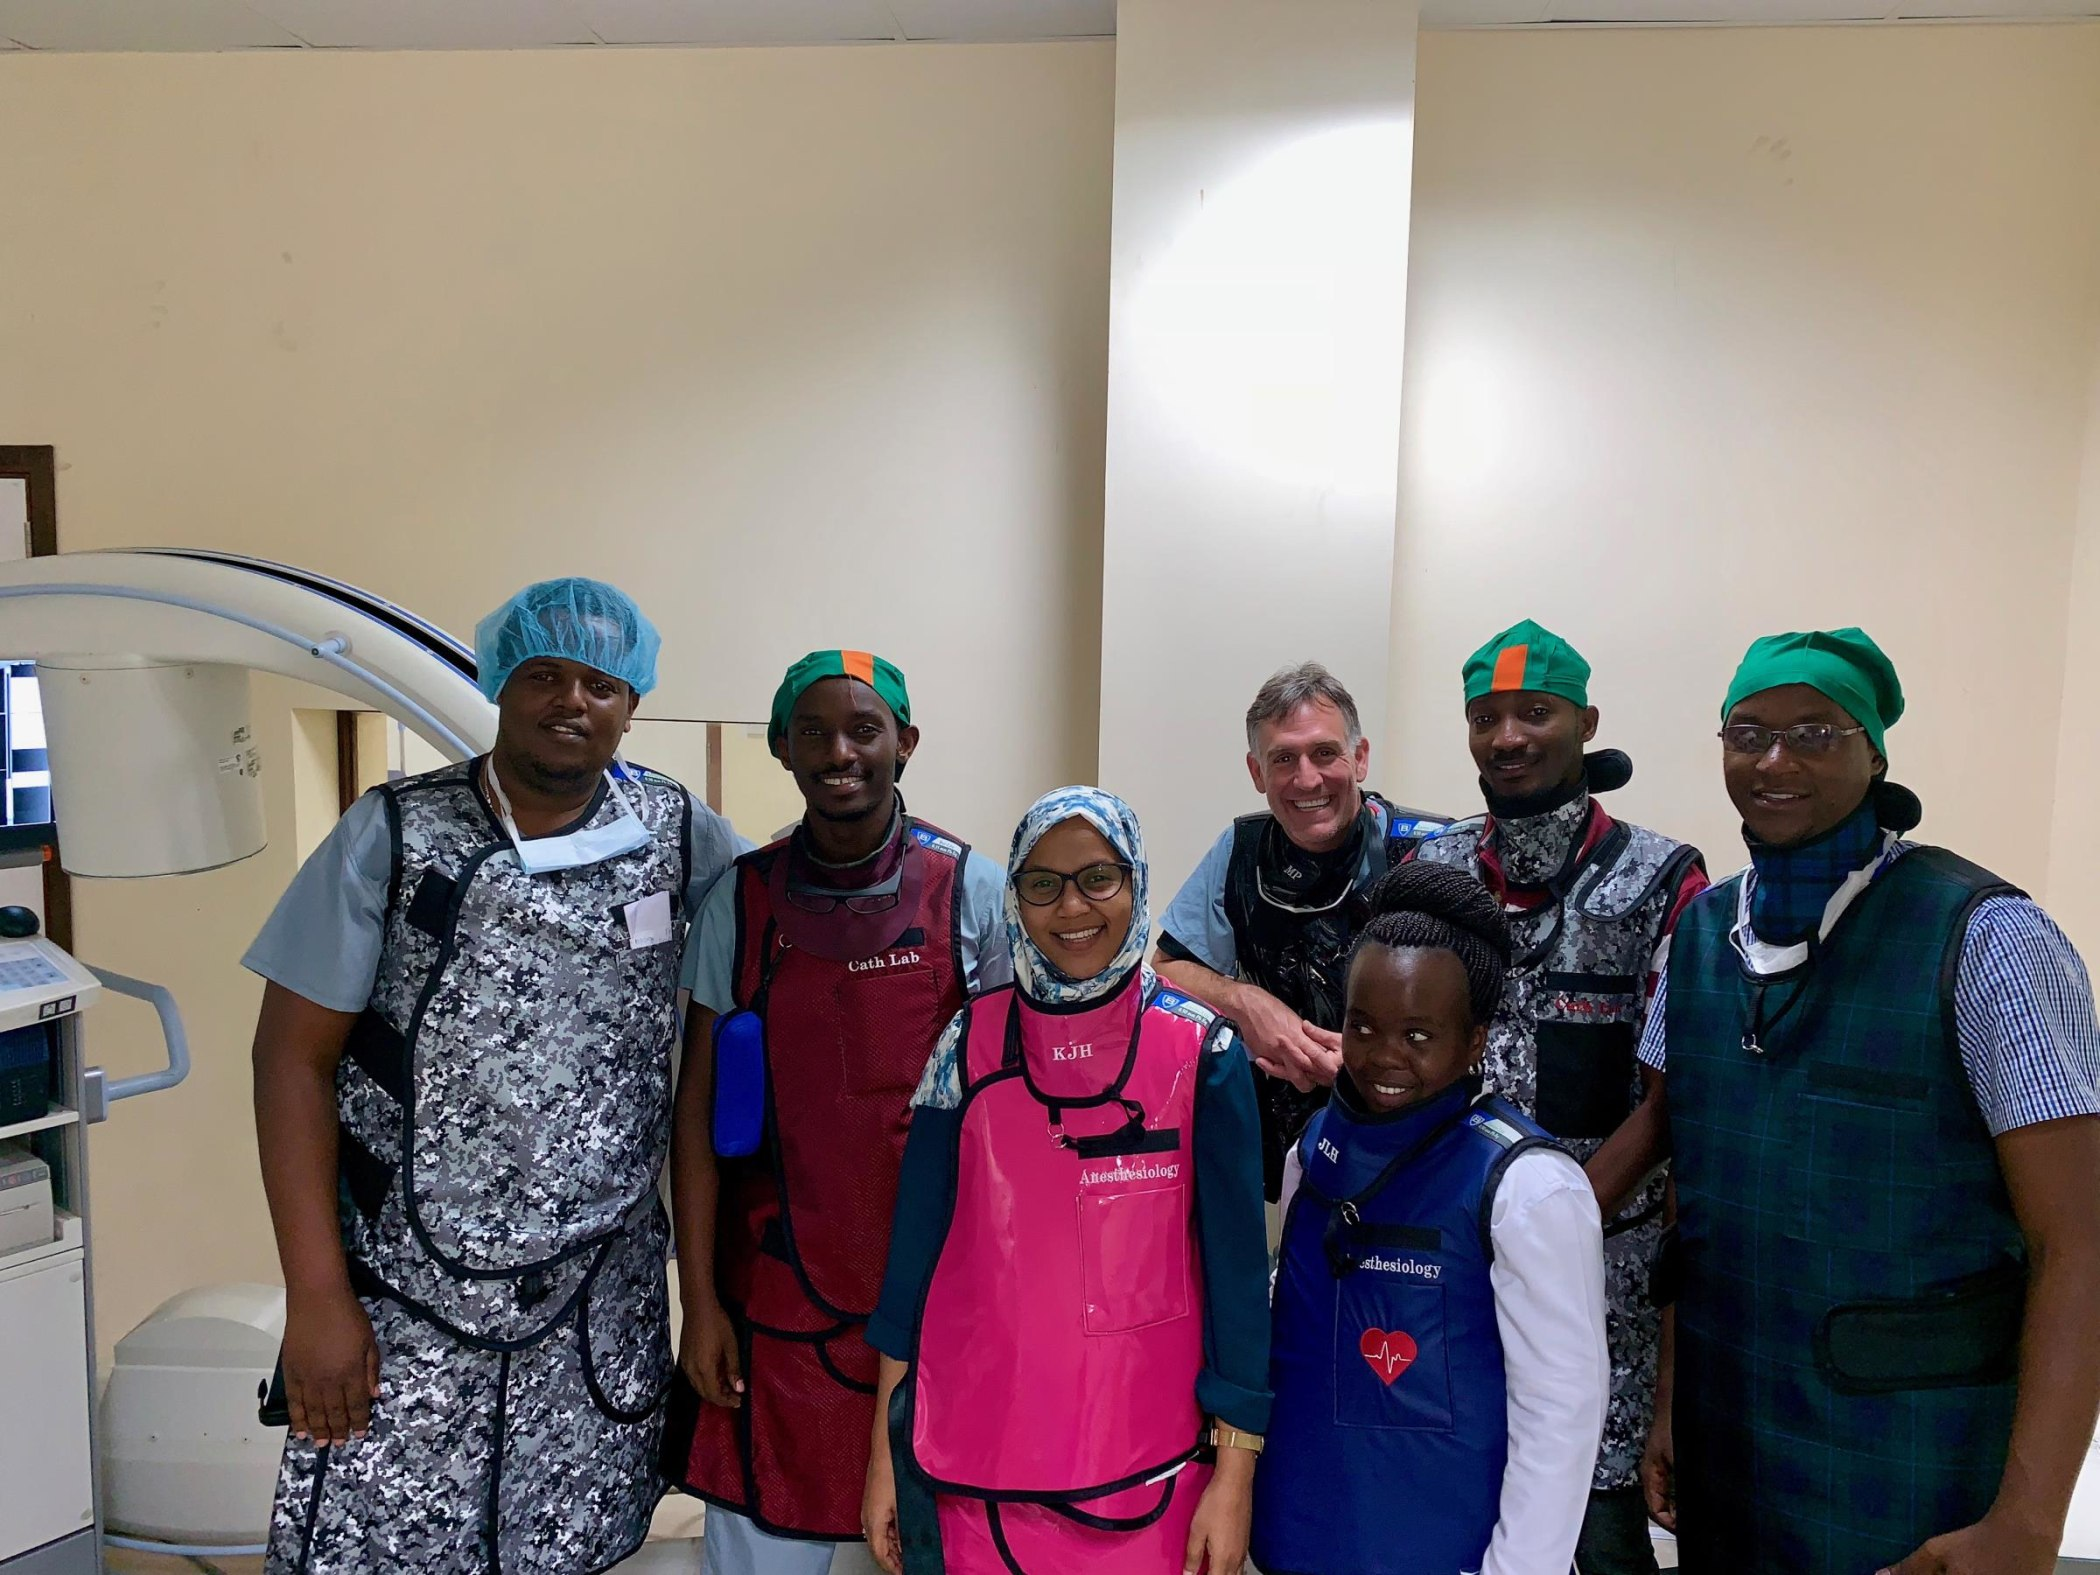 Tanzanian IR residents with Dr. Prologo, visiting faculty from Emory. From left to right: Drs. Erick Mbuguje, Ivan Rukundo, Azza Naif, Mwivano Shemwetta, Ziad Byekwaso, and Dennis Mosha.